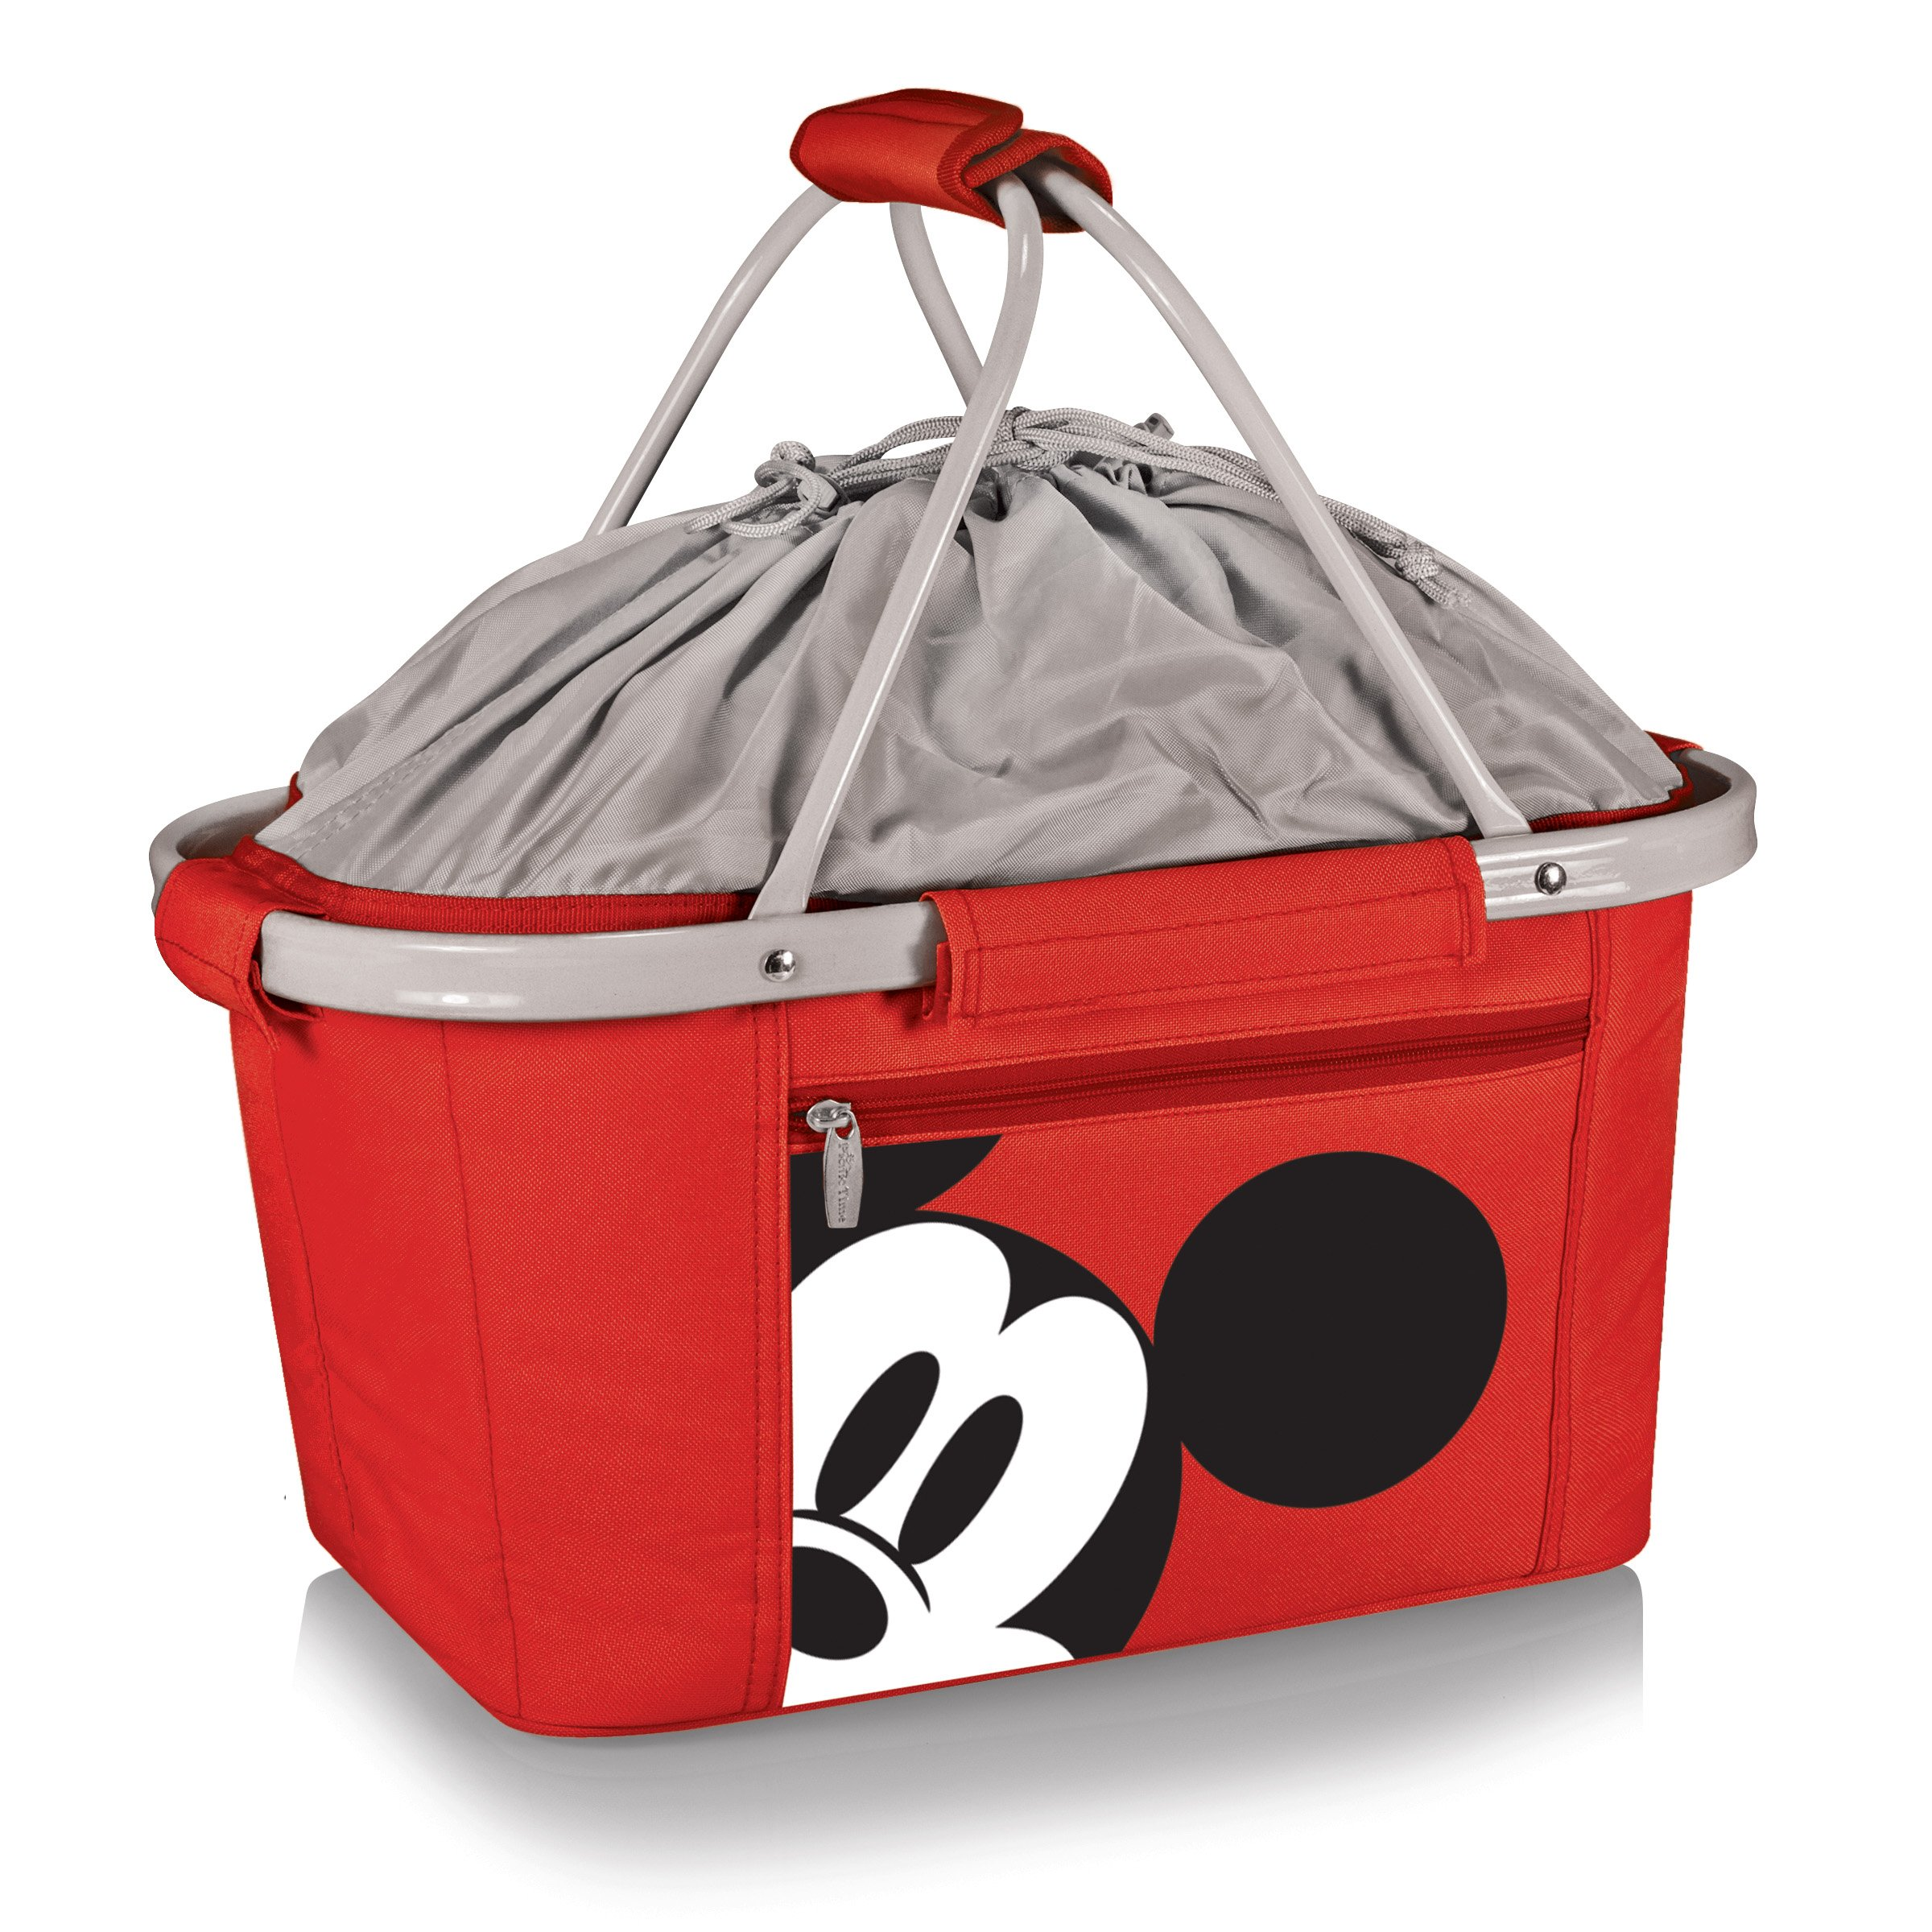 Disney Classics Mickey Mouse Metro Basket Collapsible Cooler, Red by PICNIC TIME